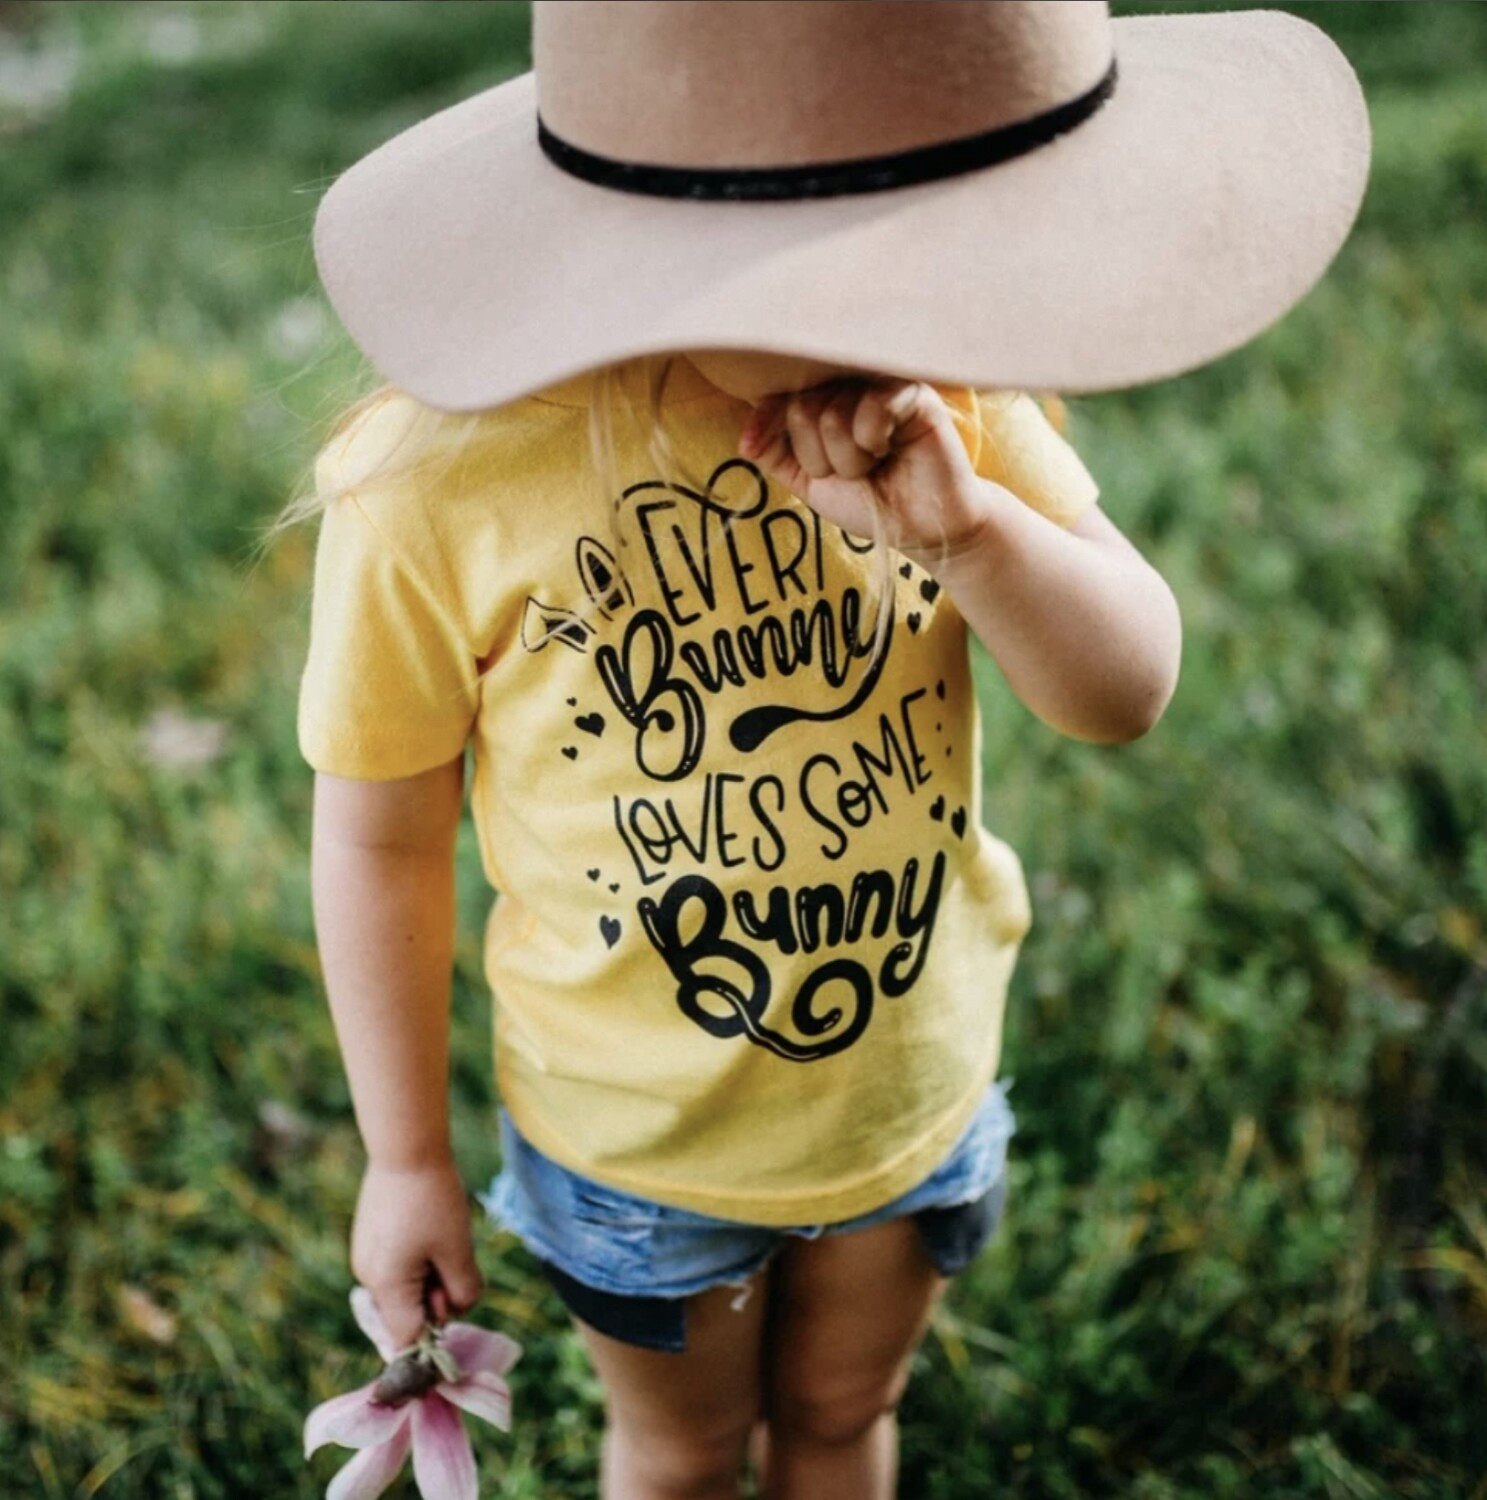 Every Bunny Loves Some Bunny Kids Tee